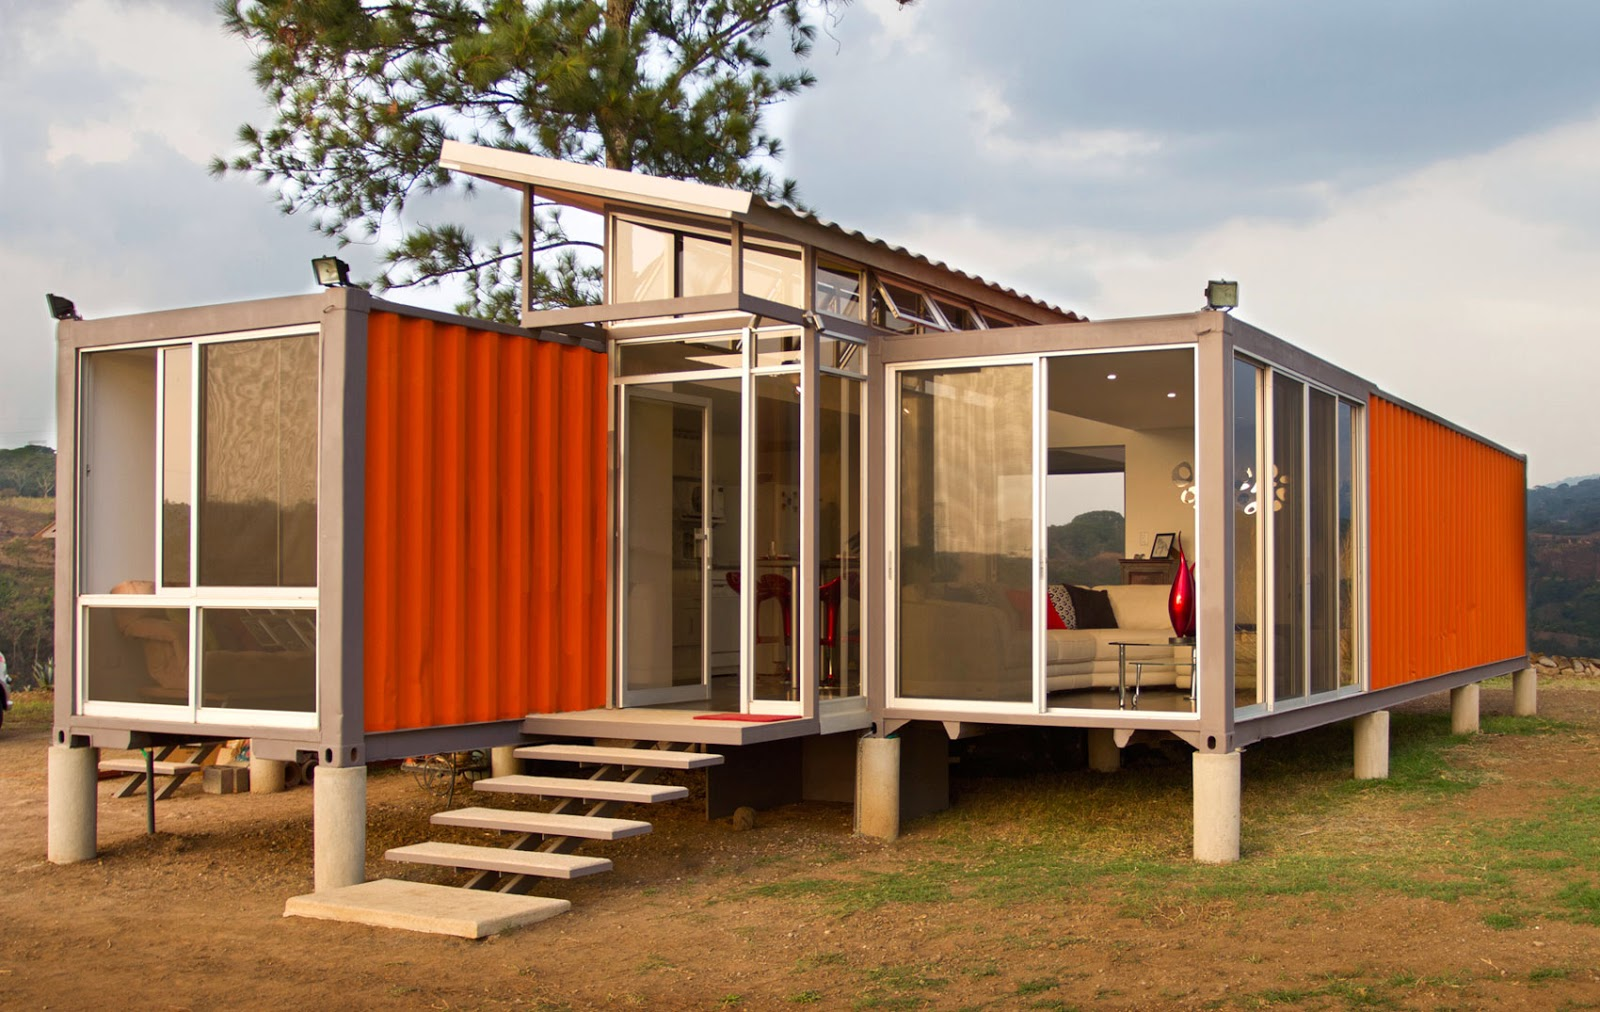 5 shipping container homes that inspire your inner architect - Homes made from shipping containers ...